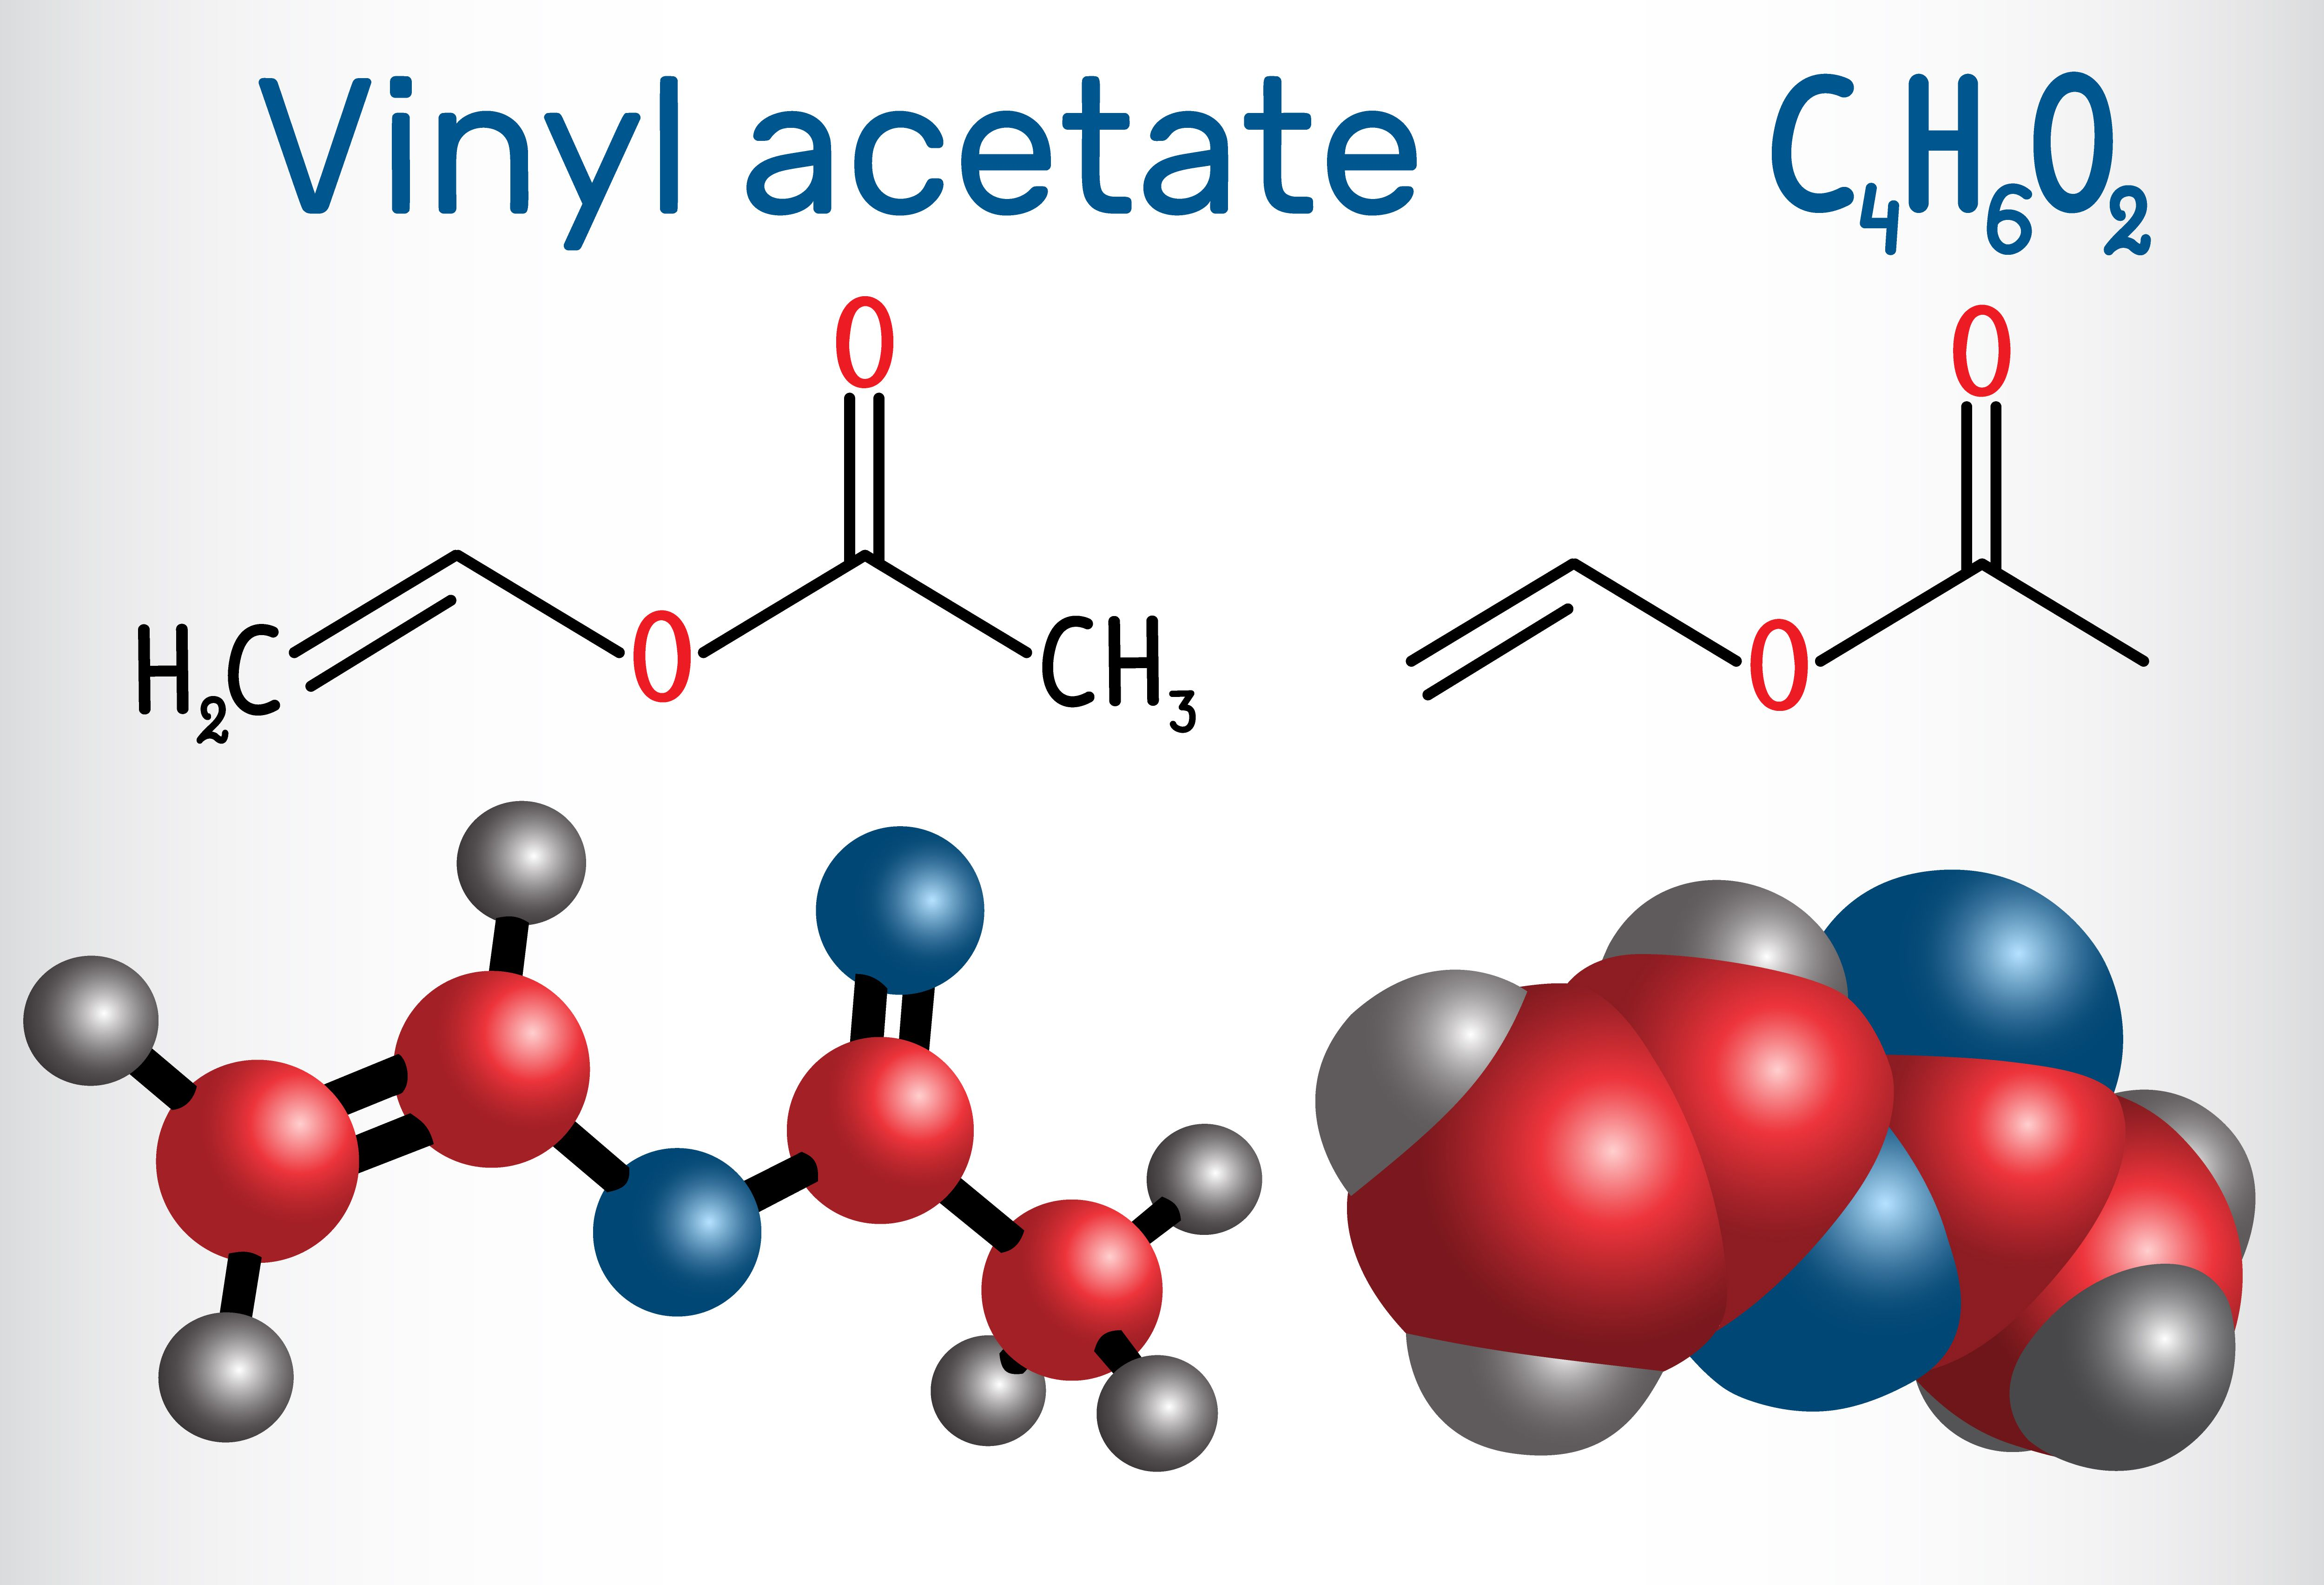 Vinyl acetate contains the carboxyl group.